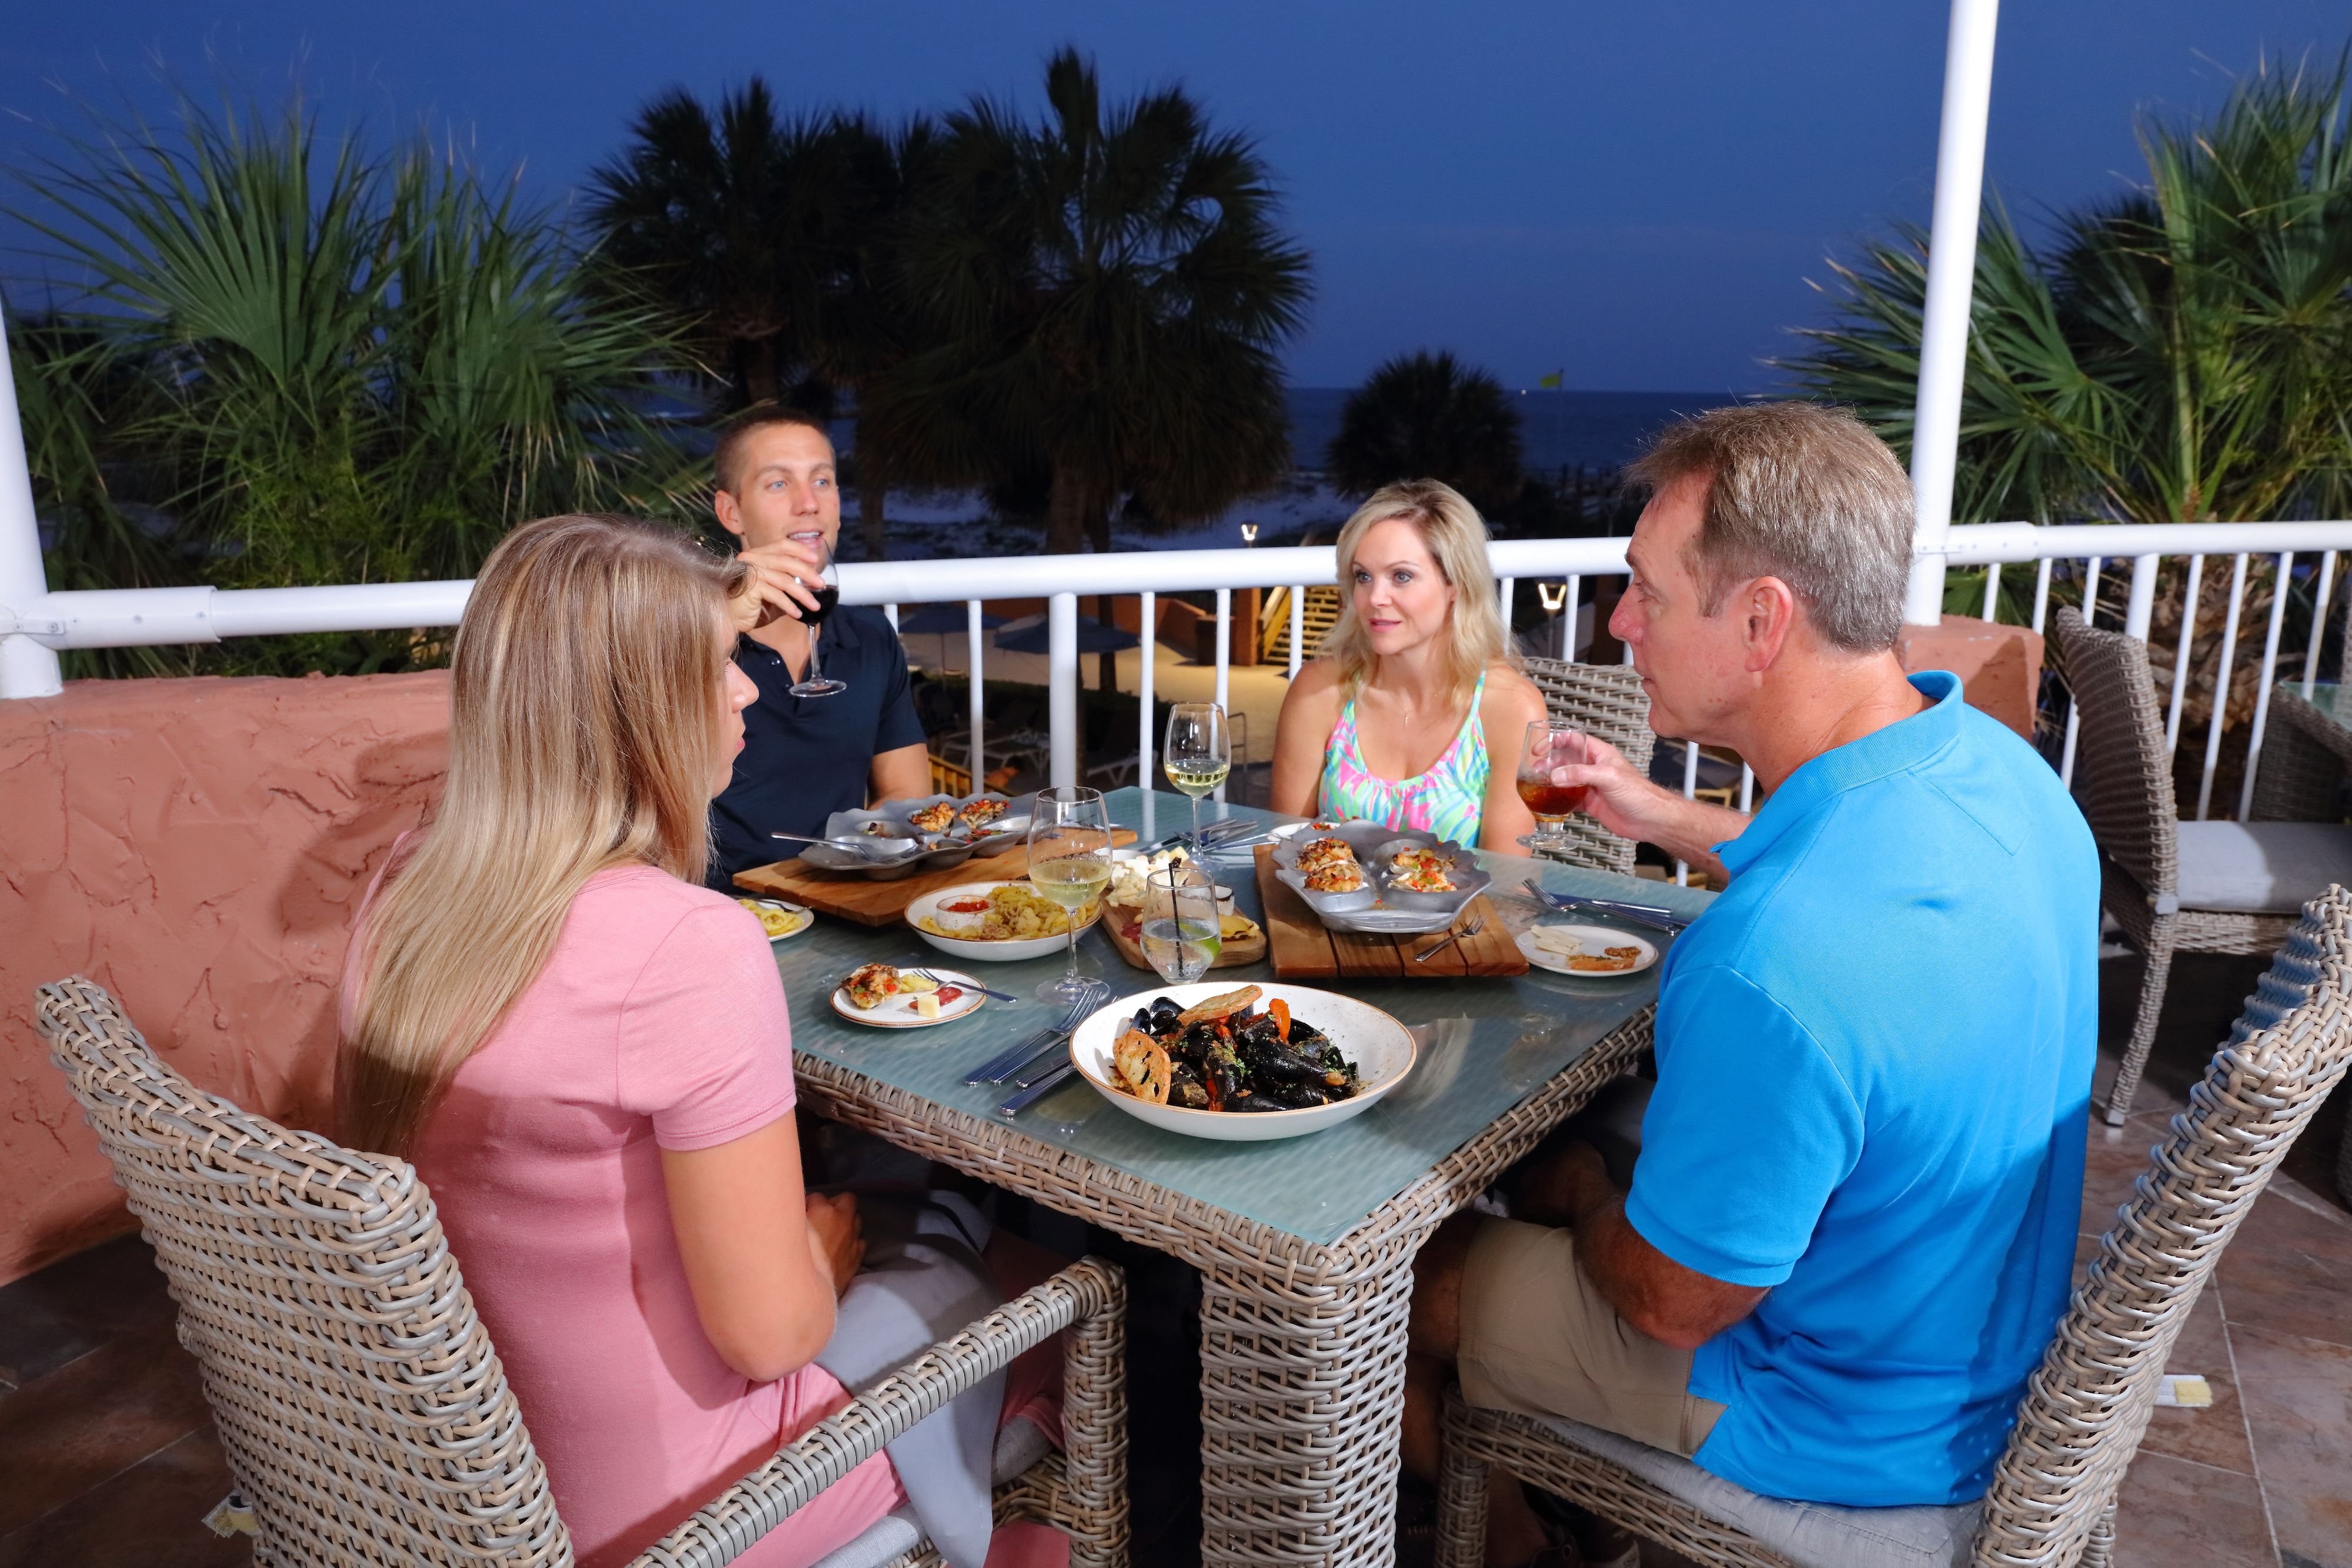 Diners Enjoying Outdoor Dining